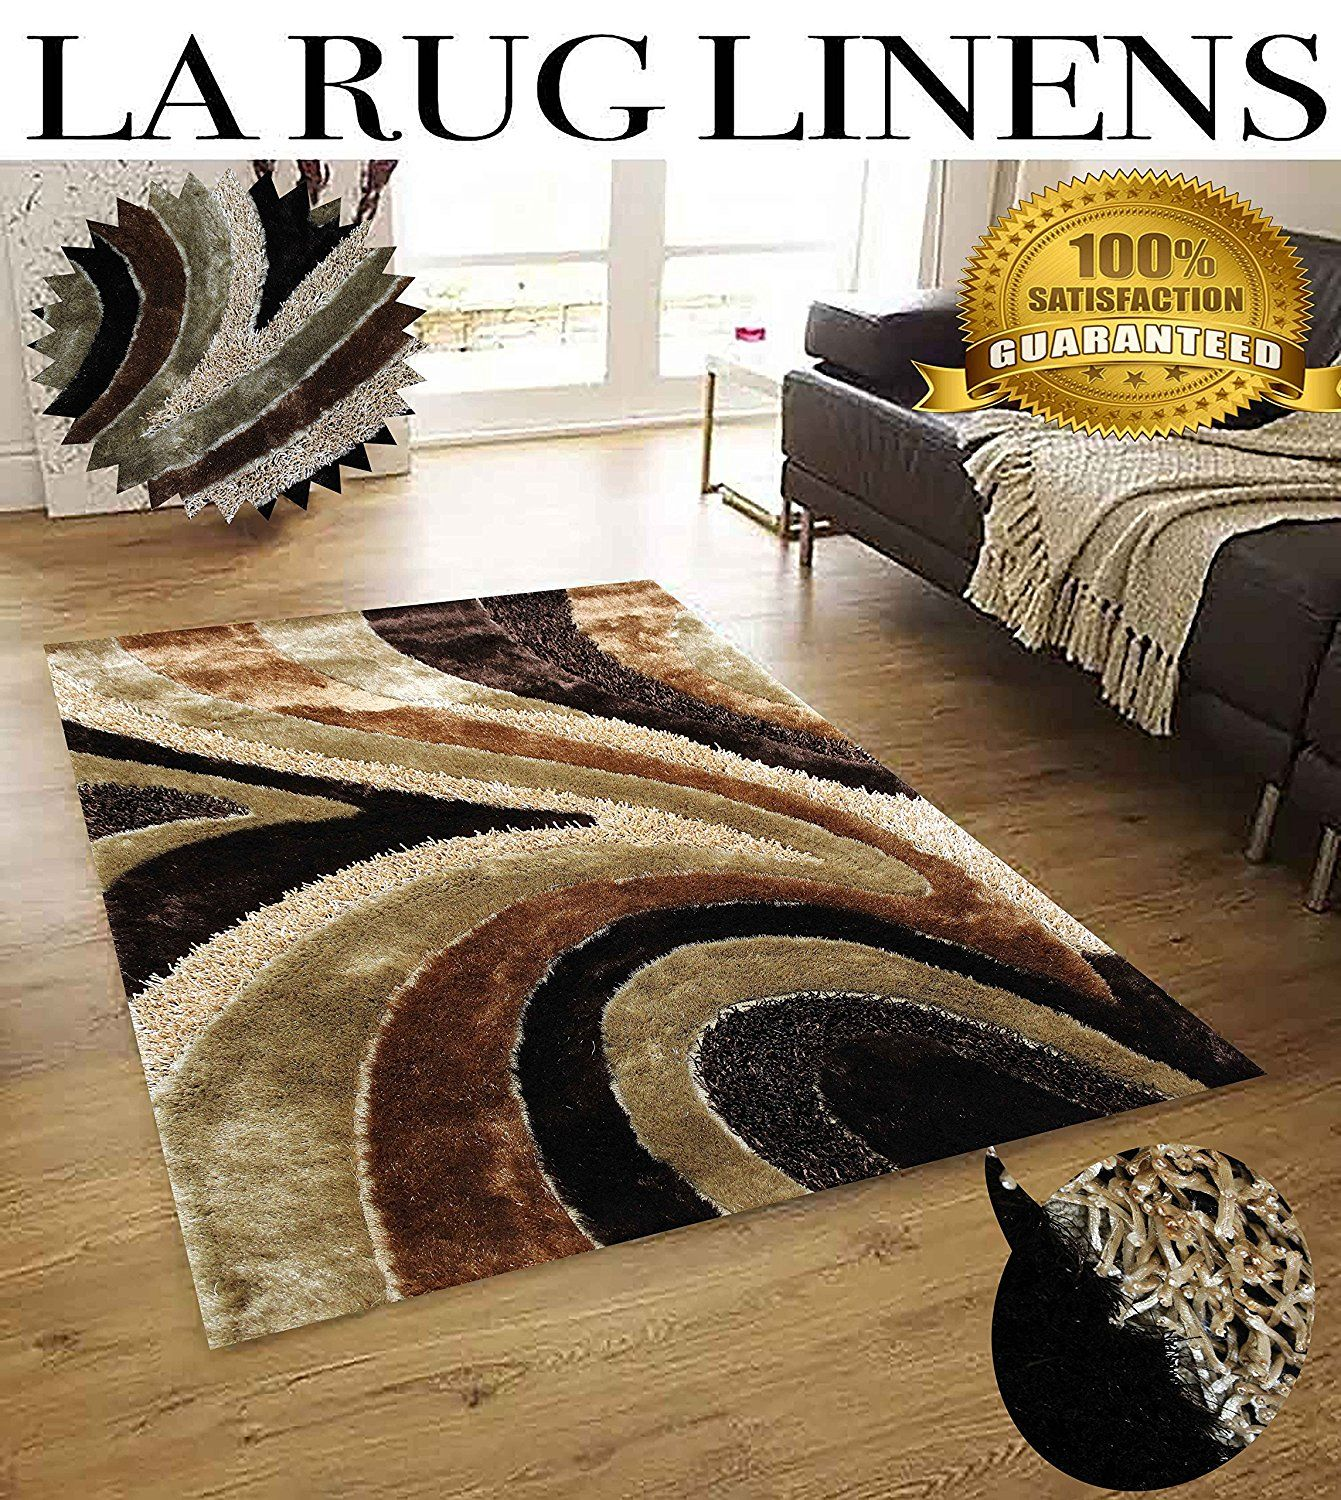 La Rug Linens Huge Blowout Sale Brand New Brown Beige 3d Curve